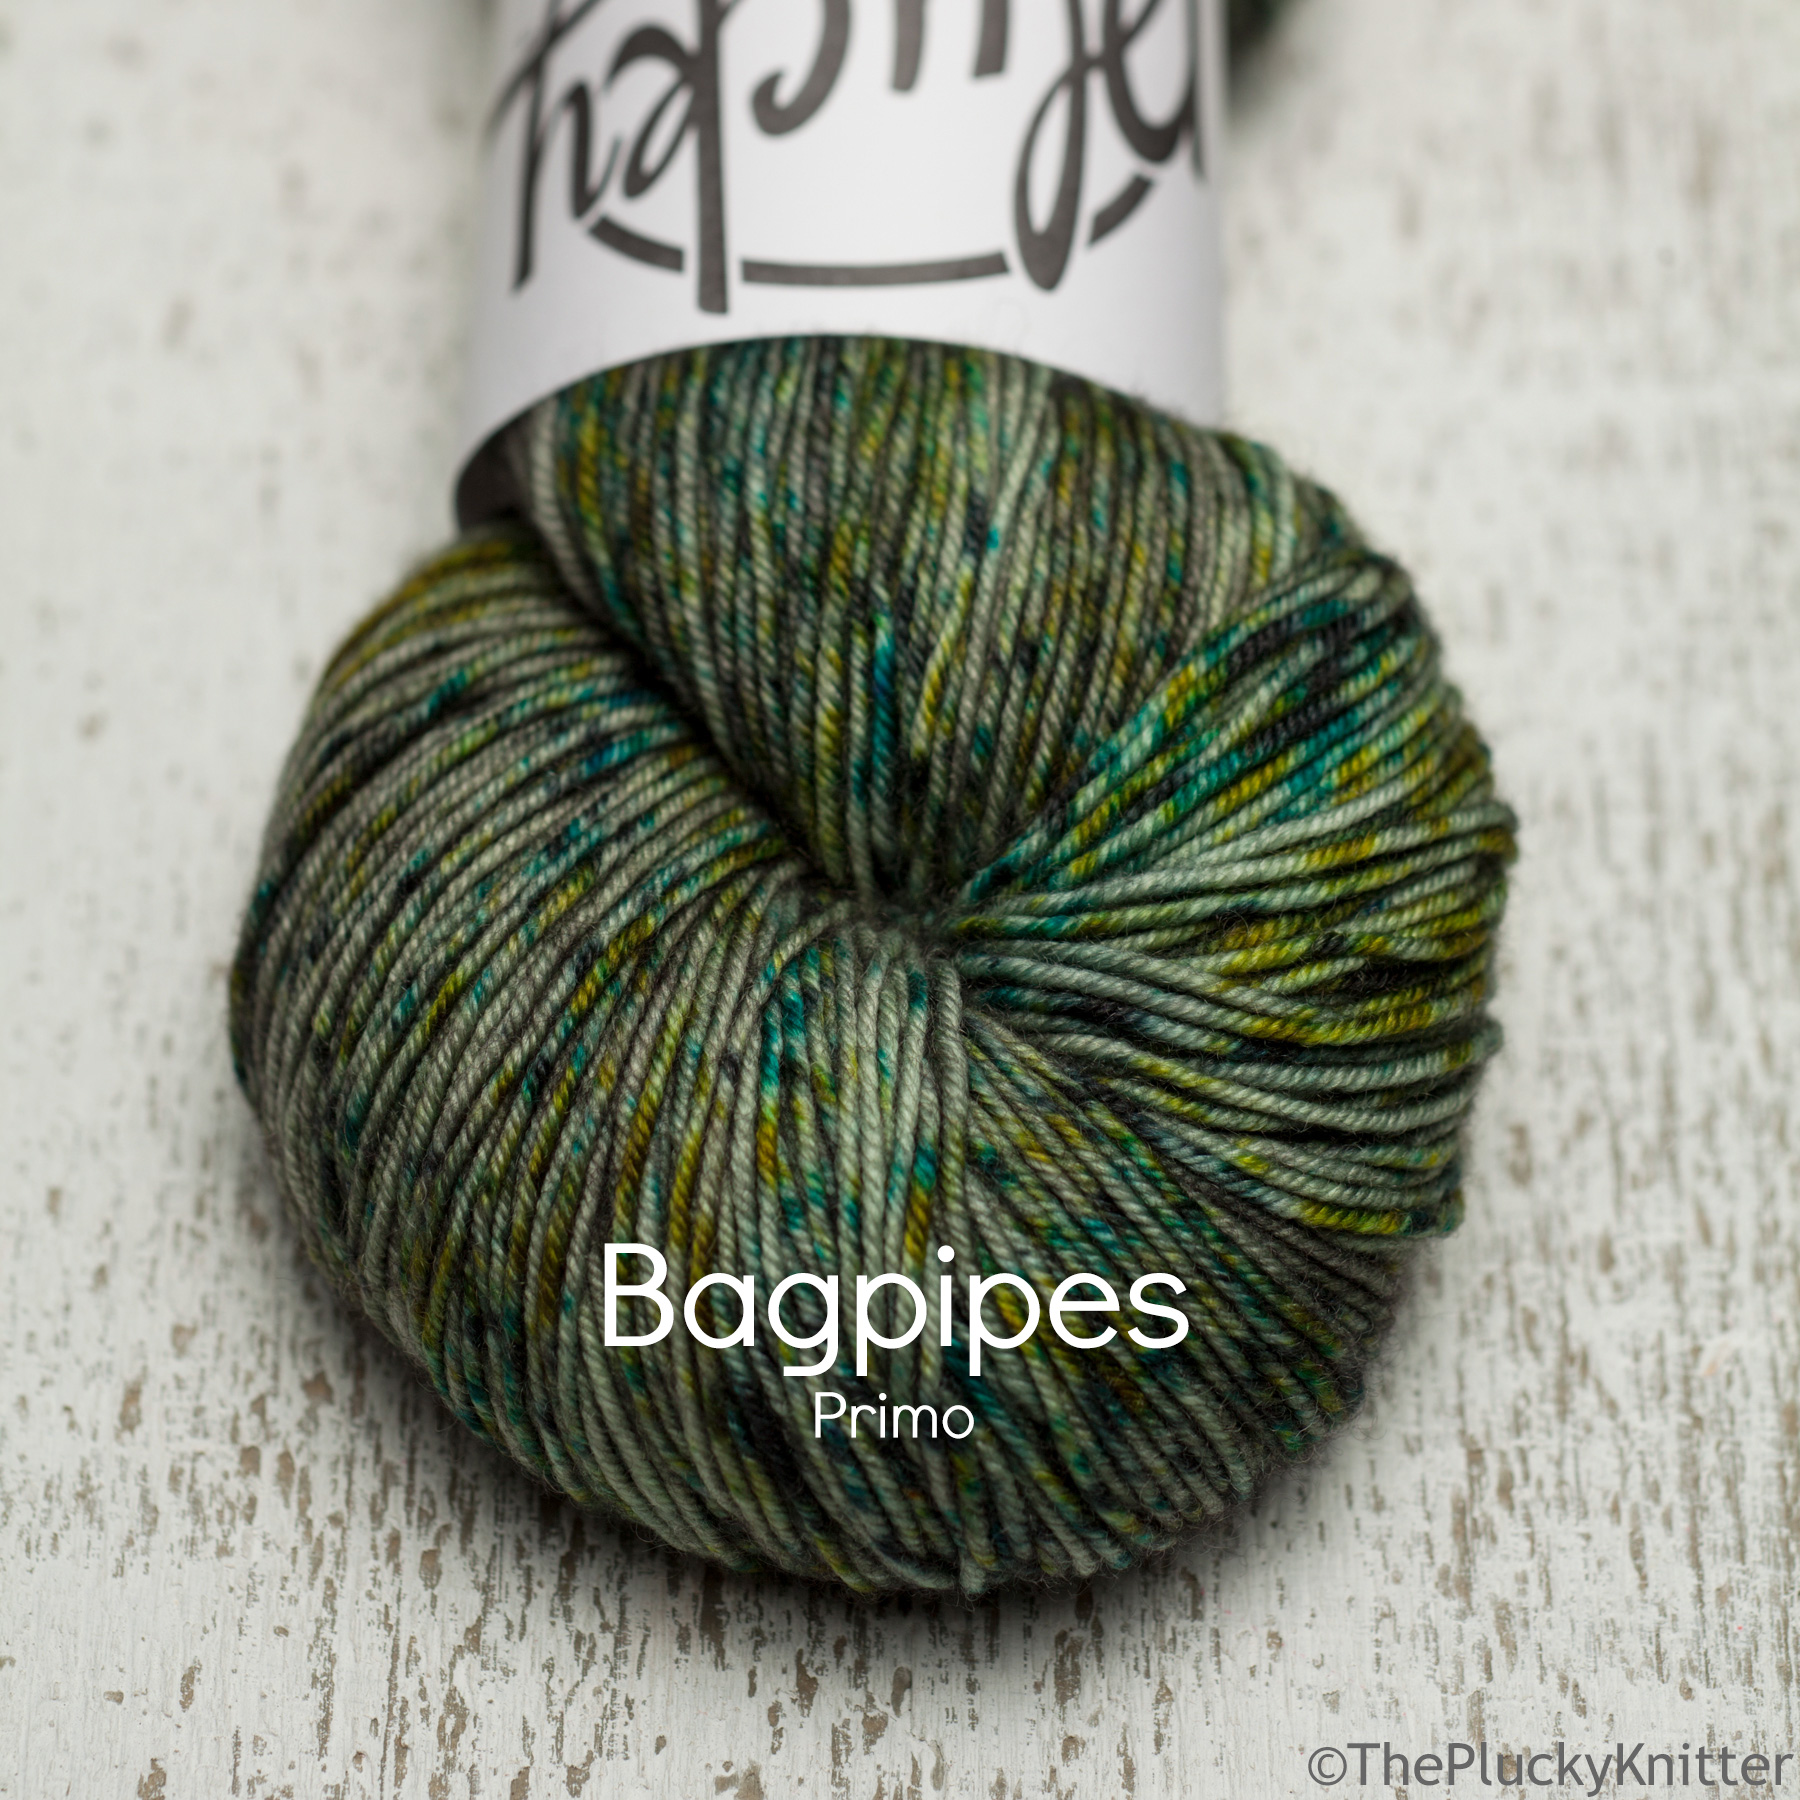 Bagpipes - Primo Sport